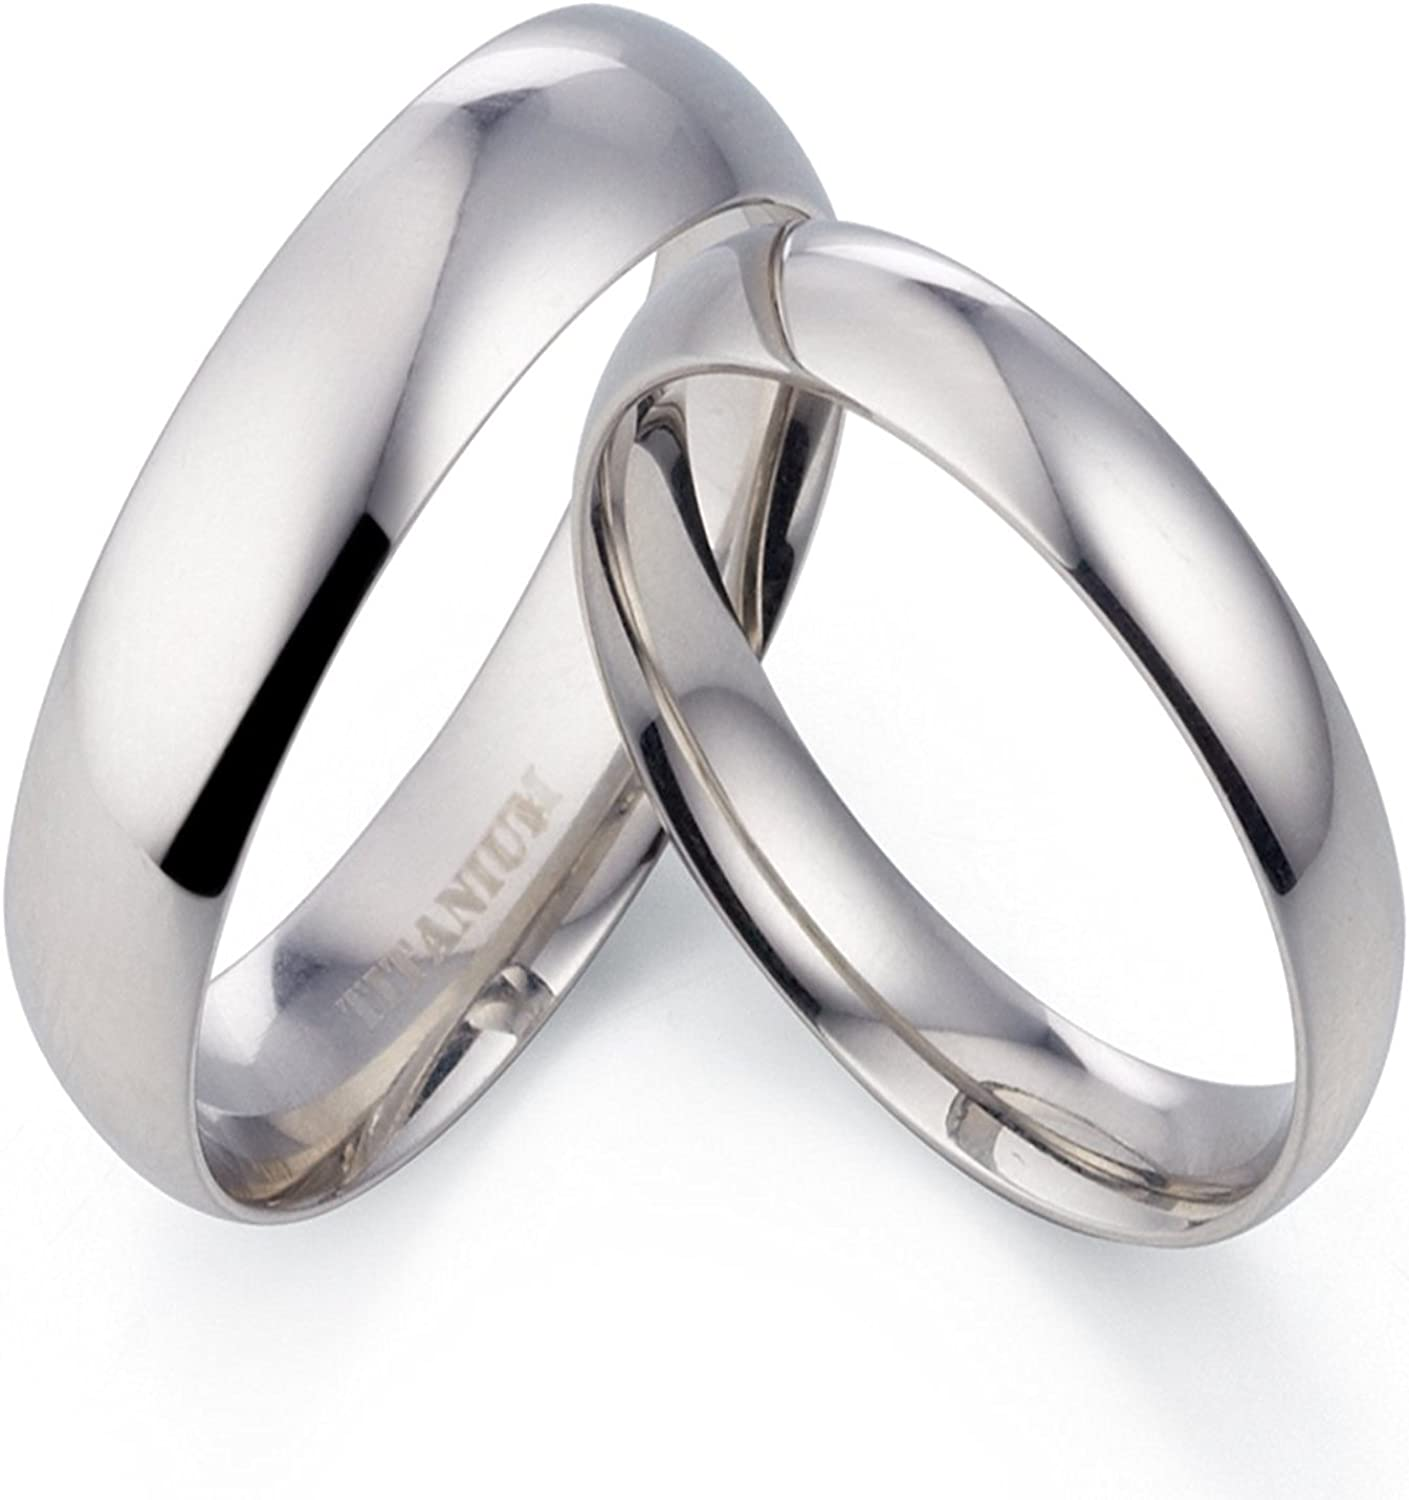 Gemini His and Her Black Titanium Promise Rings Couple Matching Wedding Rings Set 6mm /& 4mm Width Men Ring Size 8 6.5 Women Ring Size